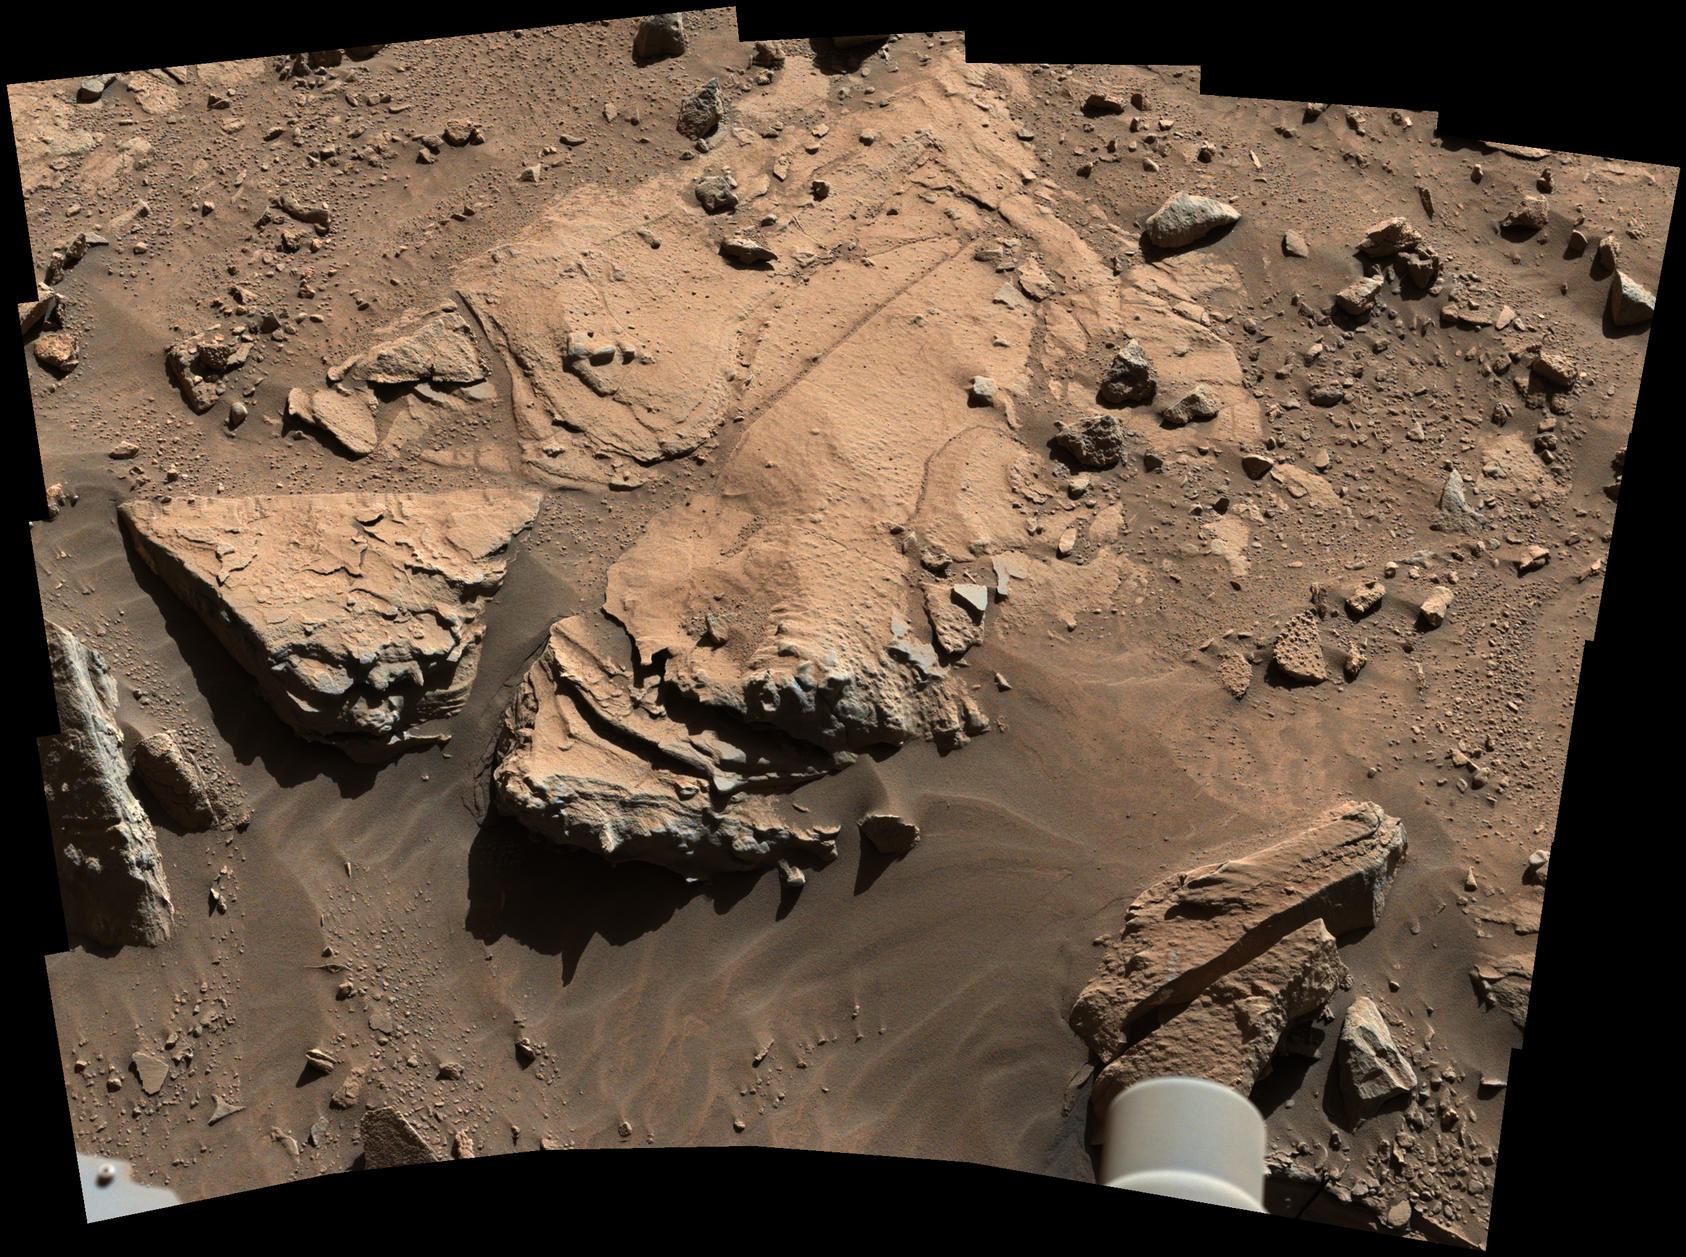 NASA's Curiosity Mars rover has driven within robotic-arm's reach of the sandstone slab at the center of this April 23 view from the rover's Mast Camera.